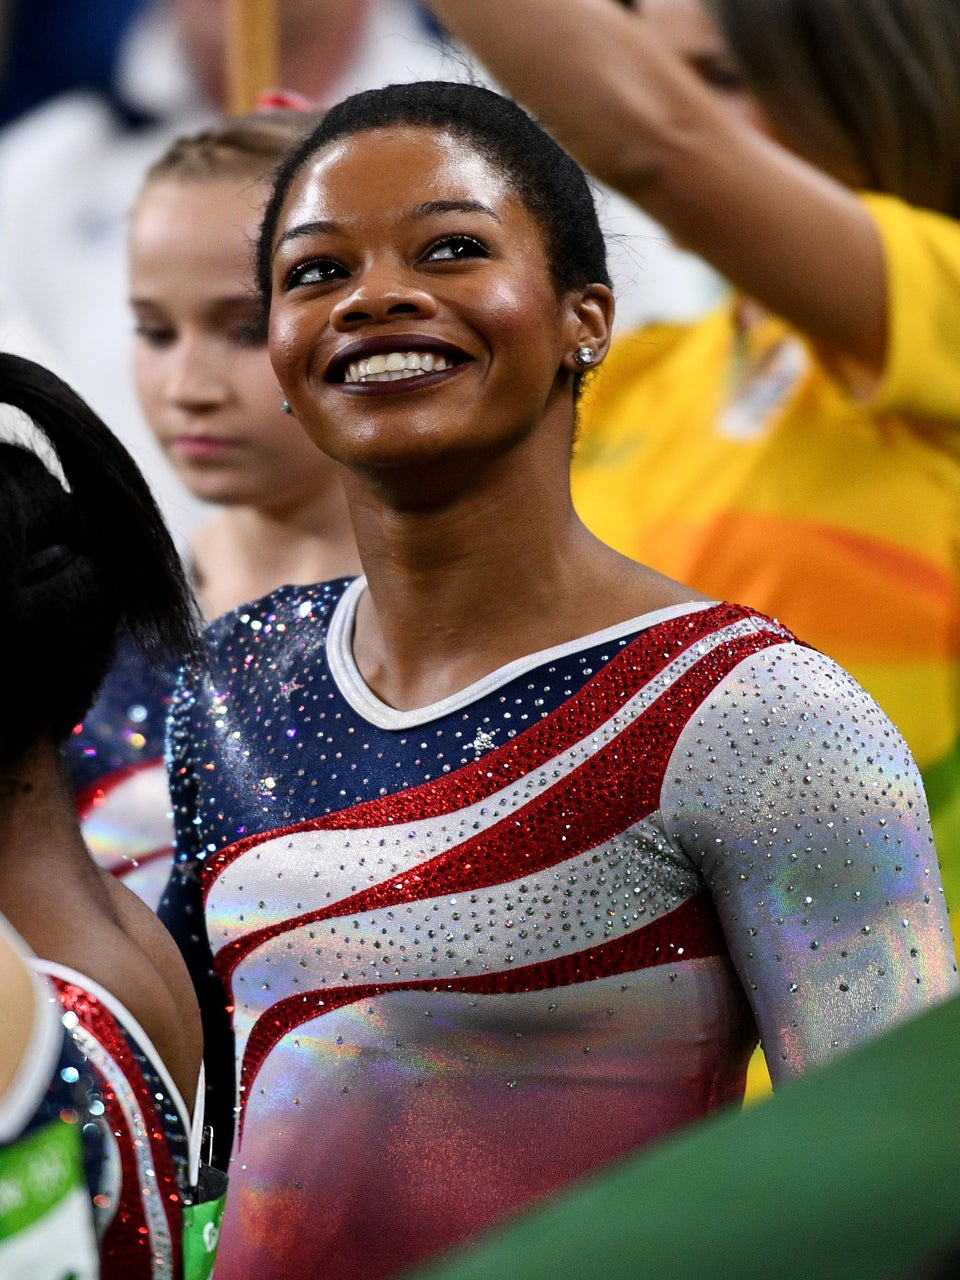 It's lit — Beauty Bakerie And Olympic Superstar Gabby Douglas Are Collaborating On Something GOOD